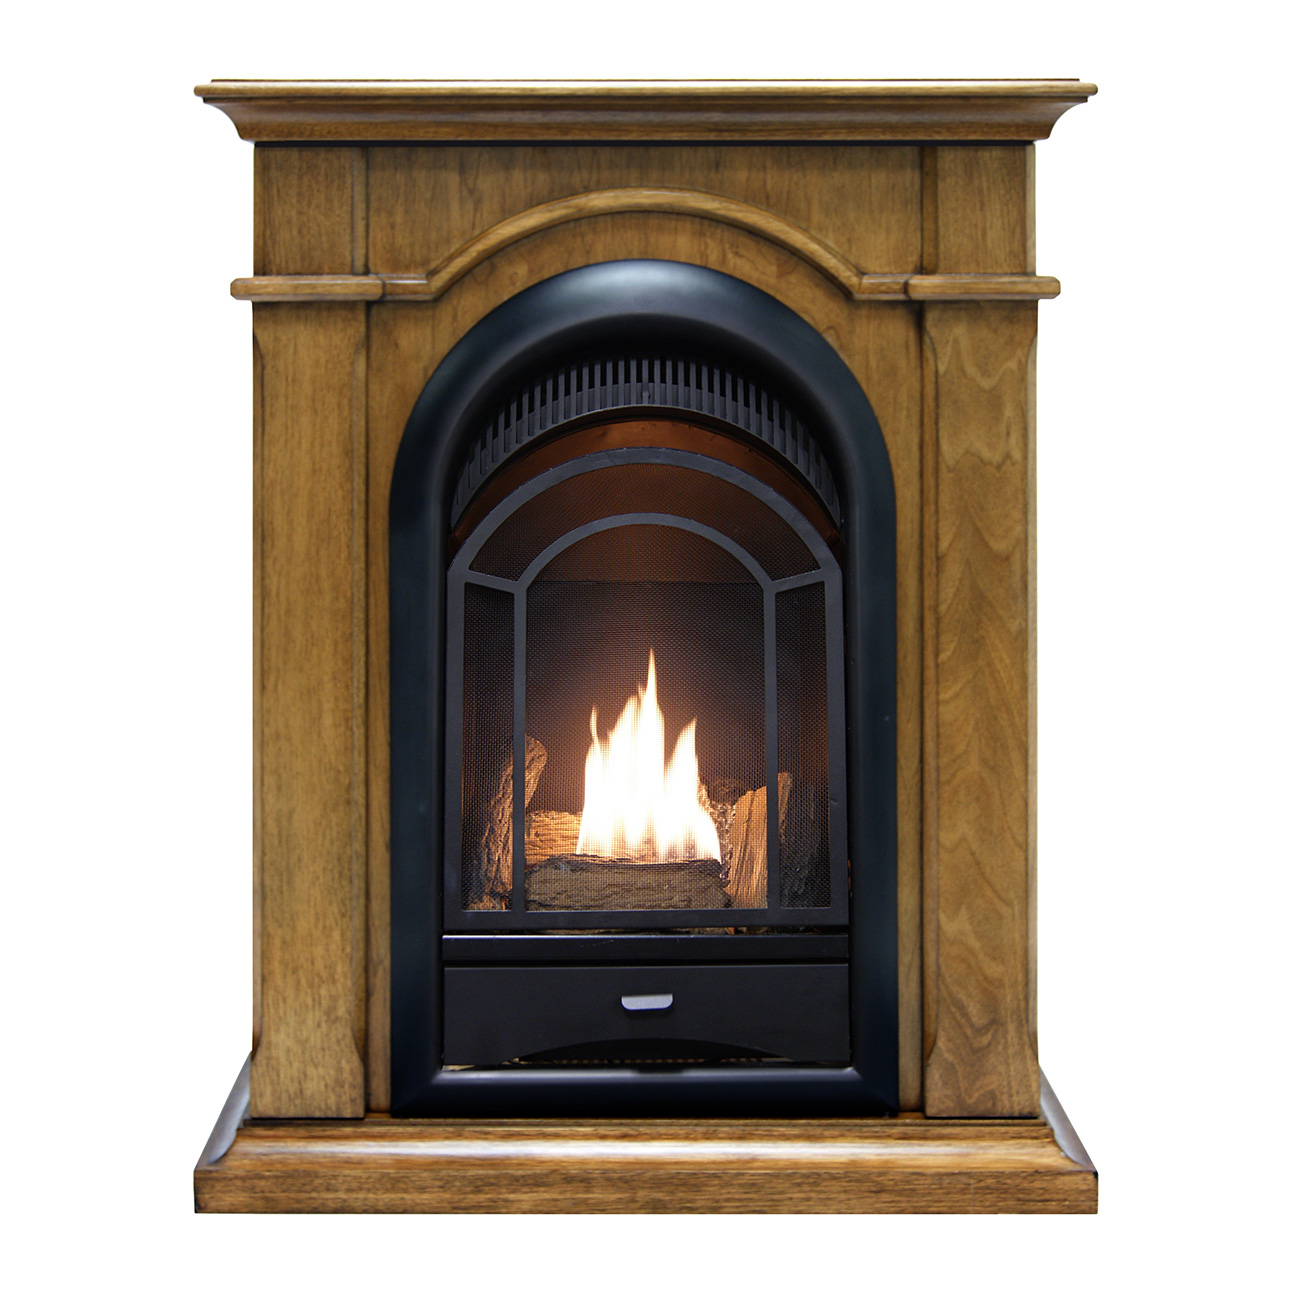 Fireplace Doesnt Heat: ProCom Dual Fuel Ventless Fireplace, 15,000 BTU's